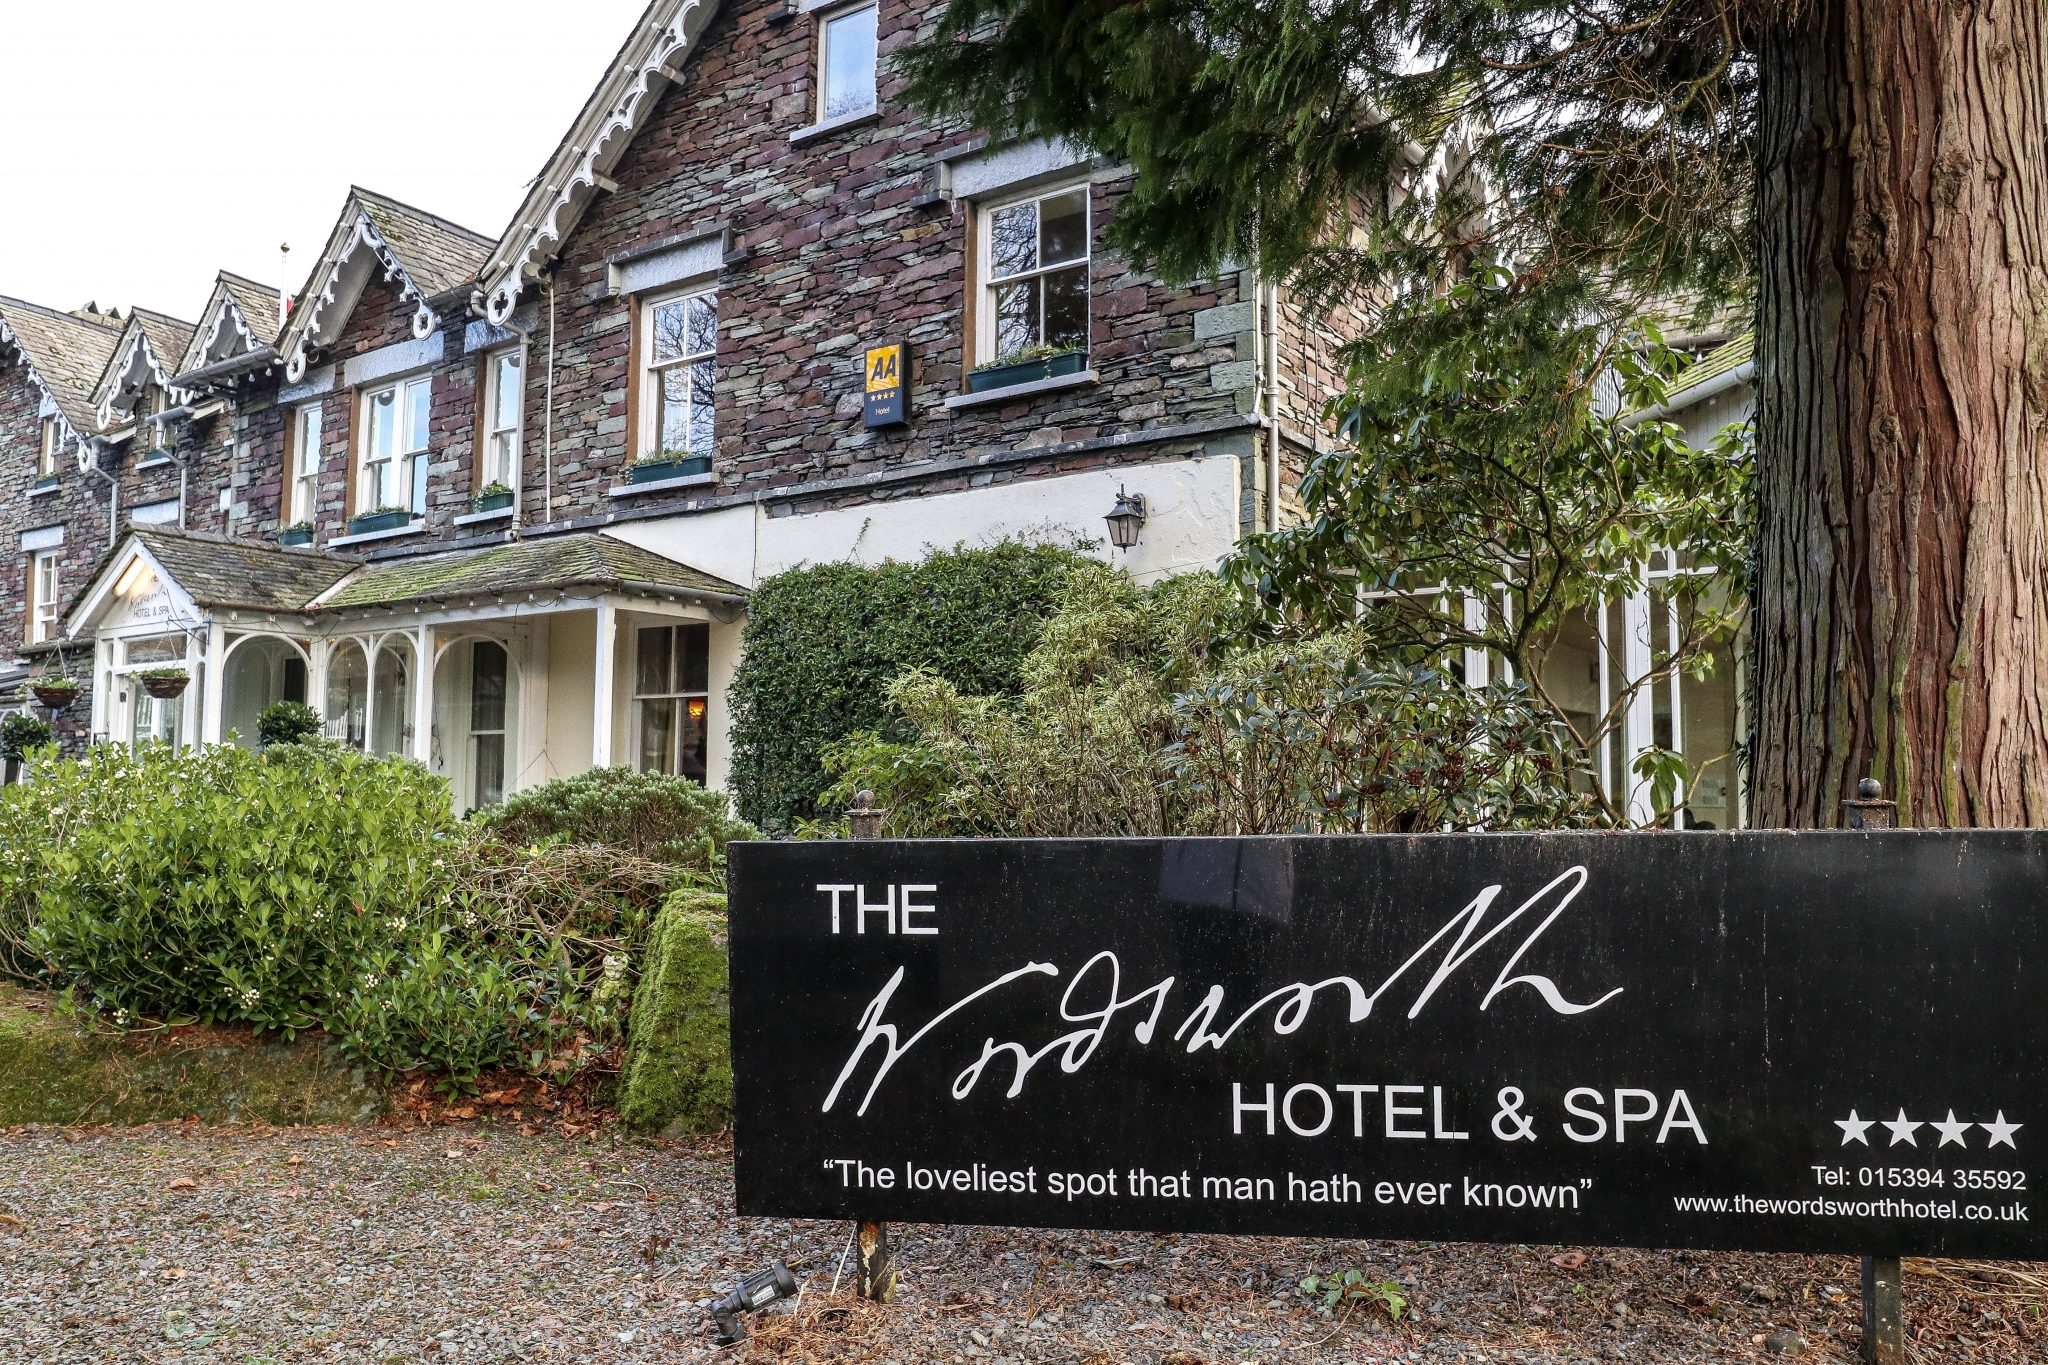 The Wordsworth Hotel & Spa, The Lake District